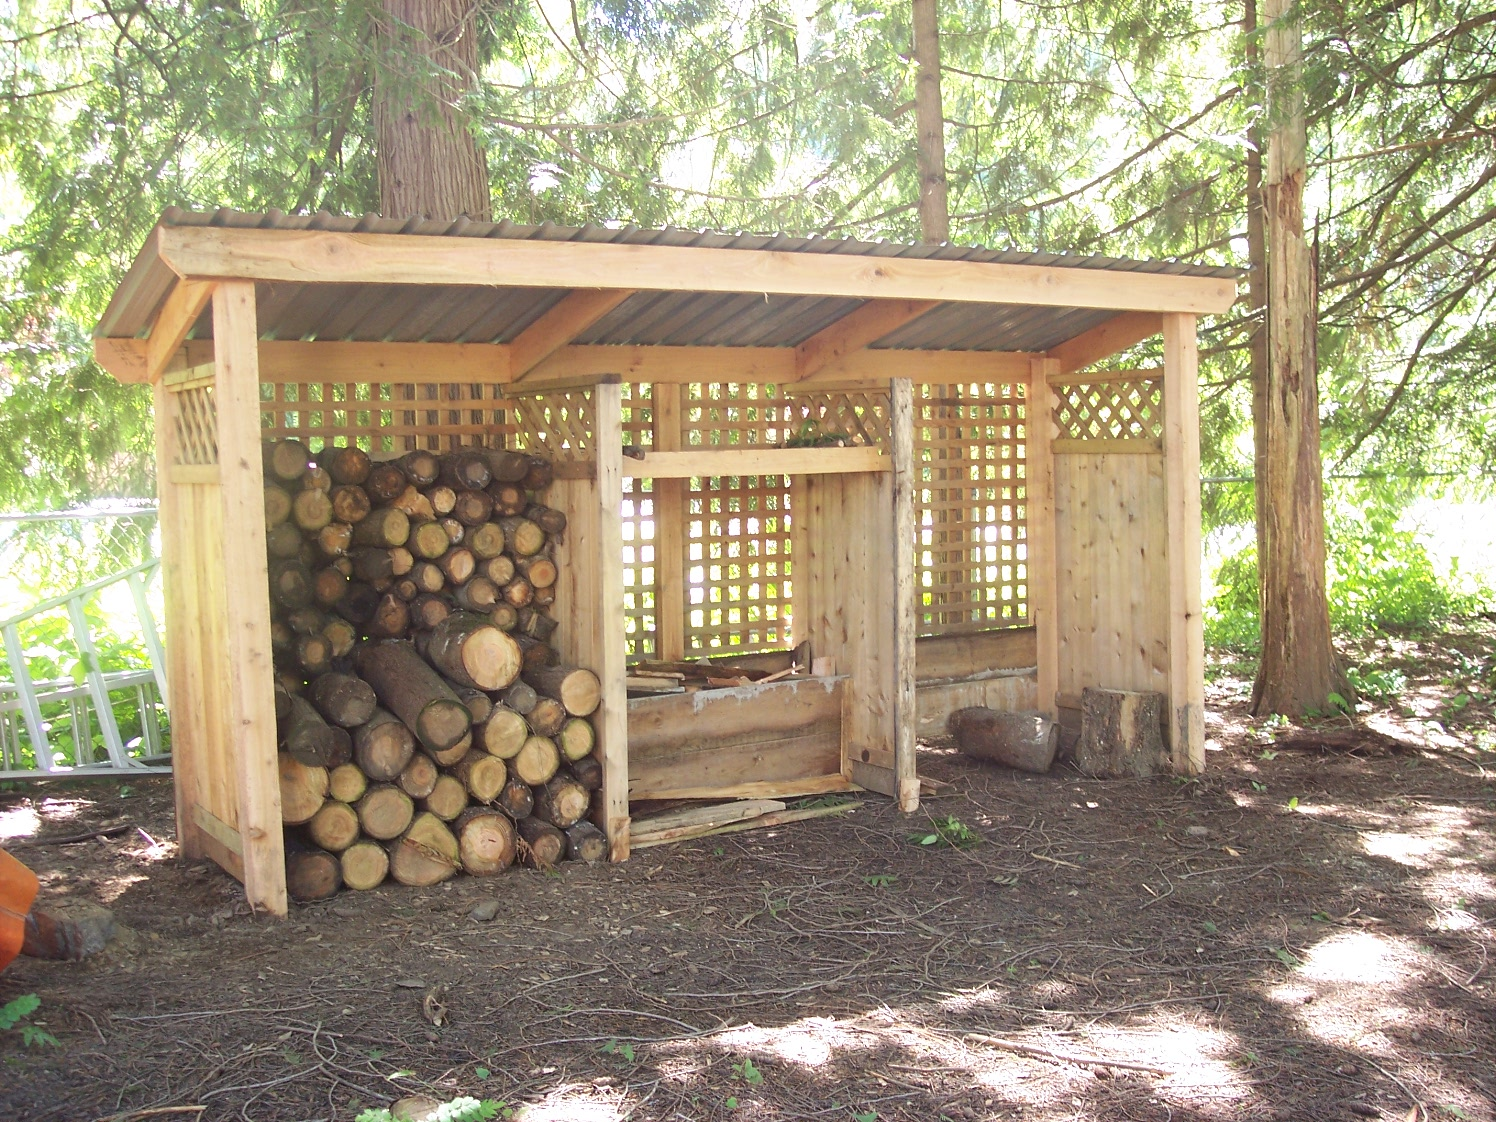 Build a wood shed in 6 hours | SRP Enterprises' Weblog